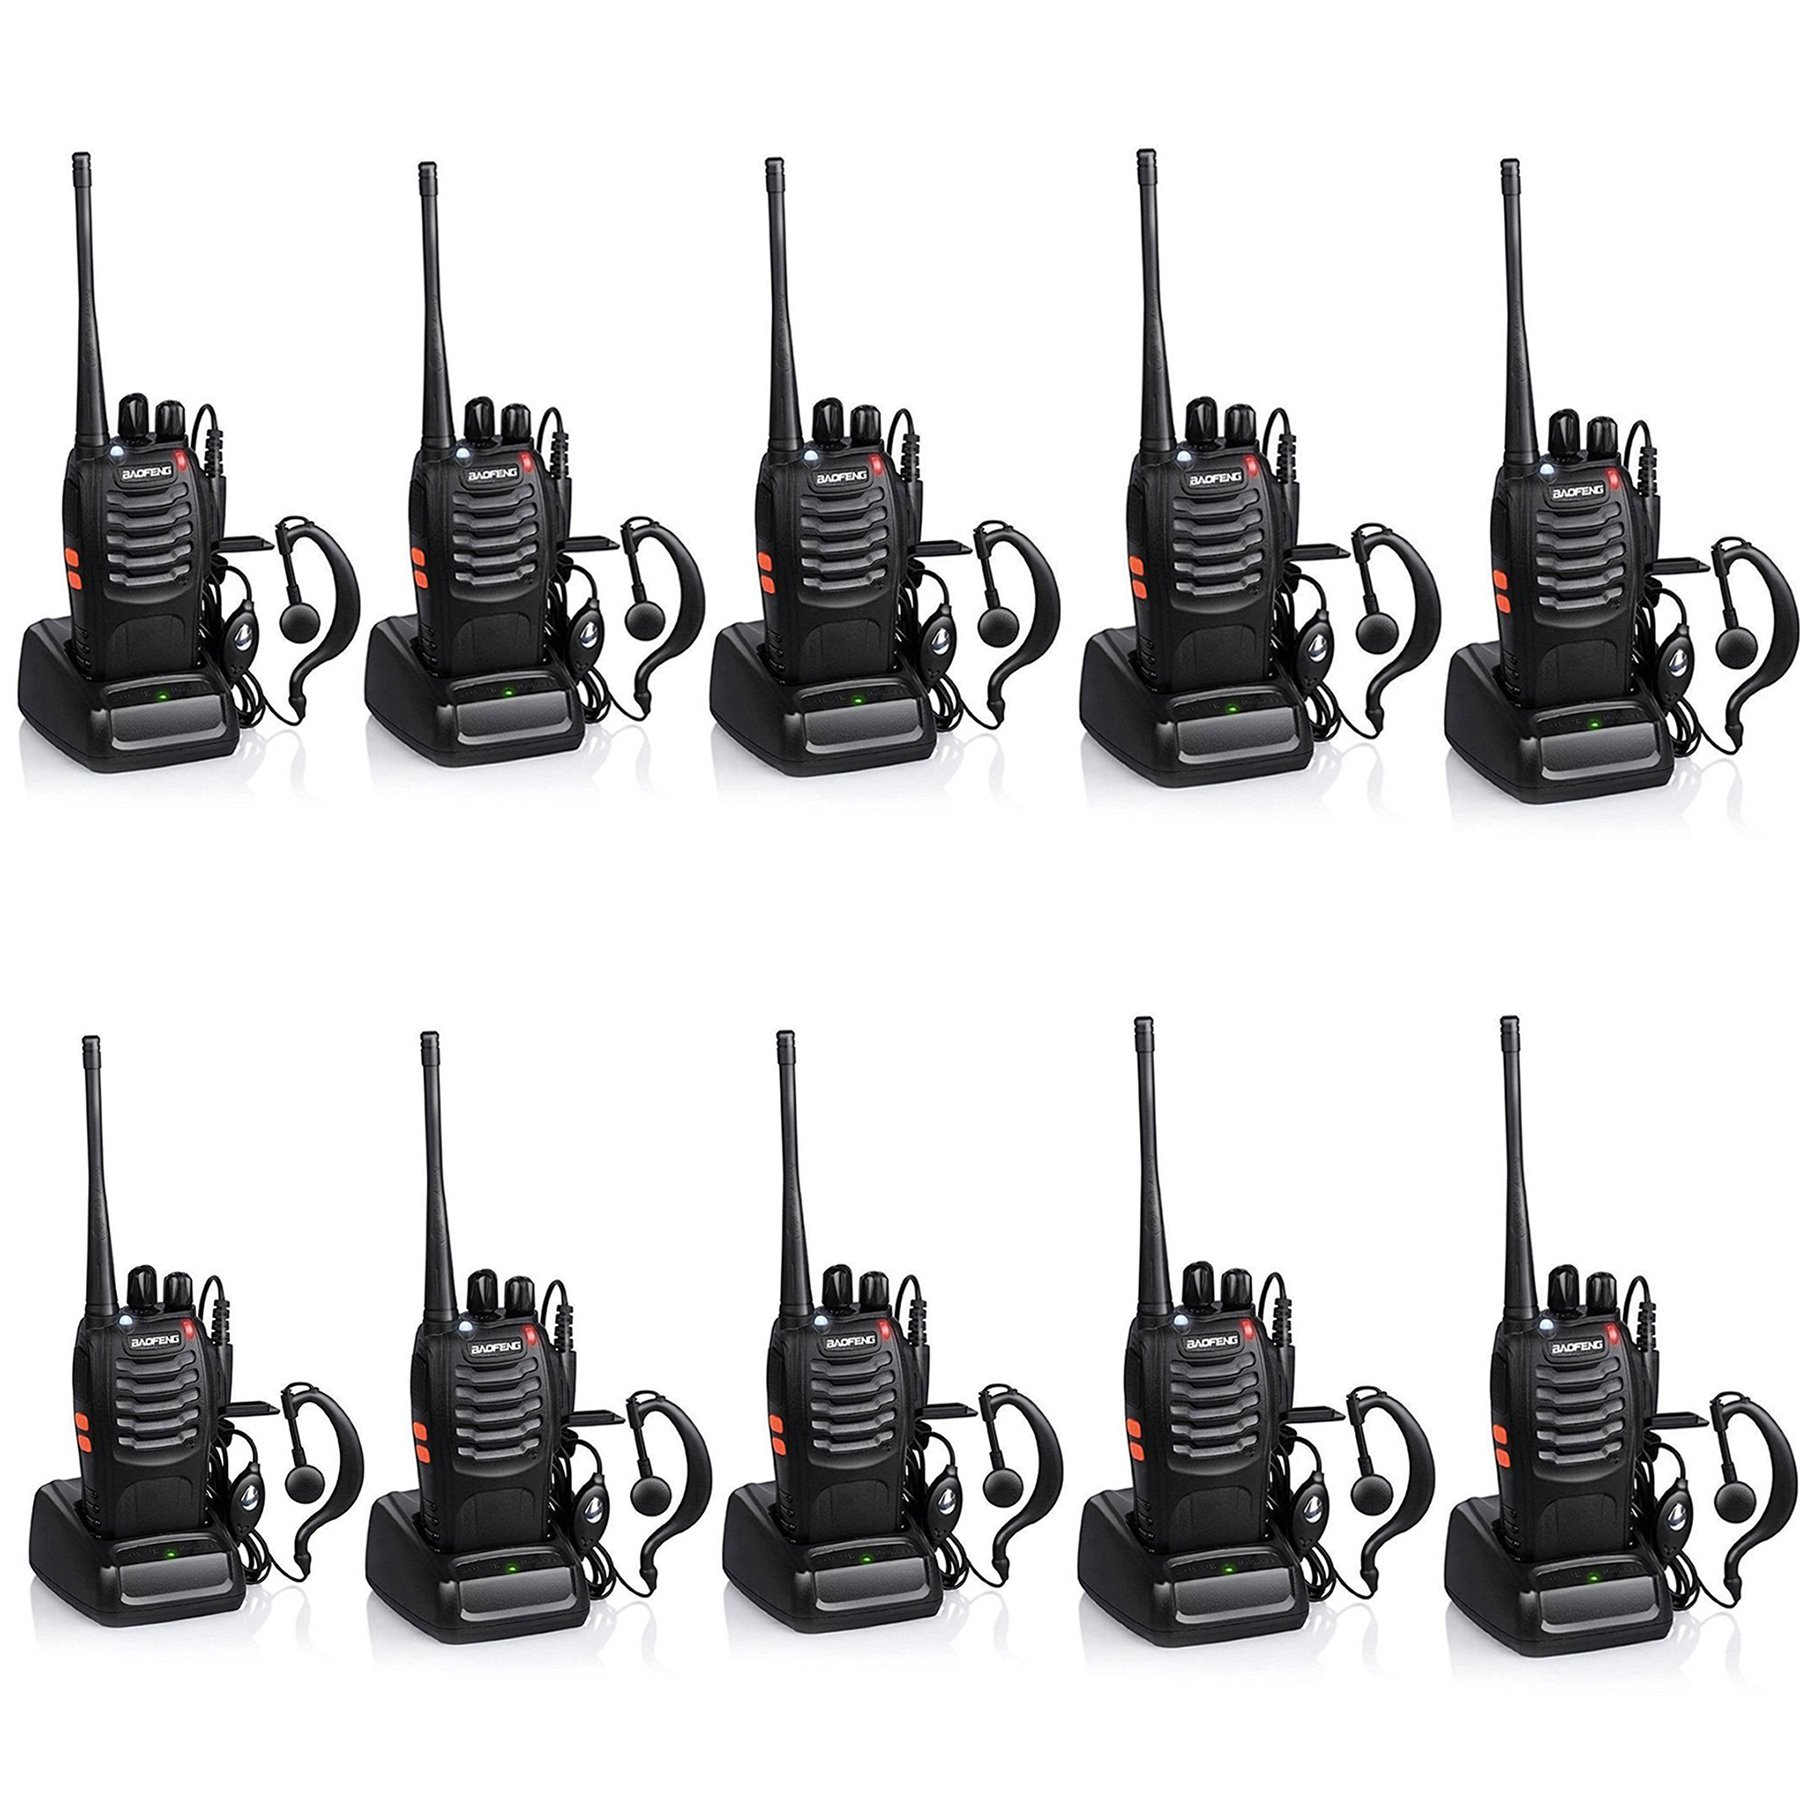 Baofeng BF-888S Rechargeable Long Range 5W Two Way Radio Walkie Talkies 16 Channel Handheld Radio Built in LED Torch Microphone With Earpiece(Pack of 10) 10 Pack